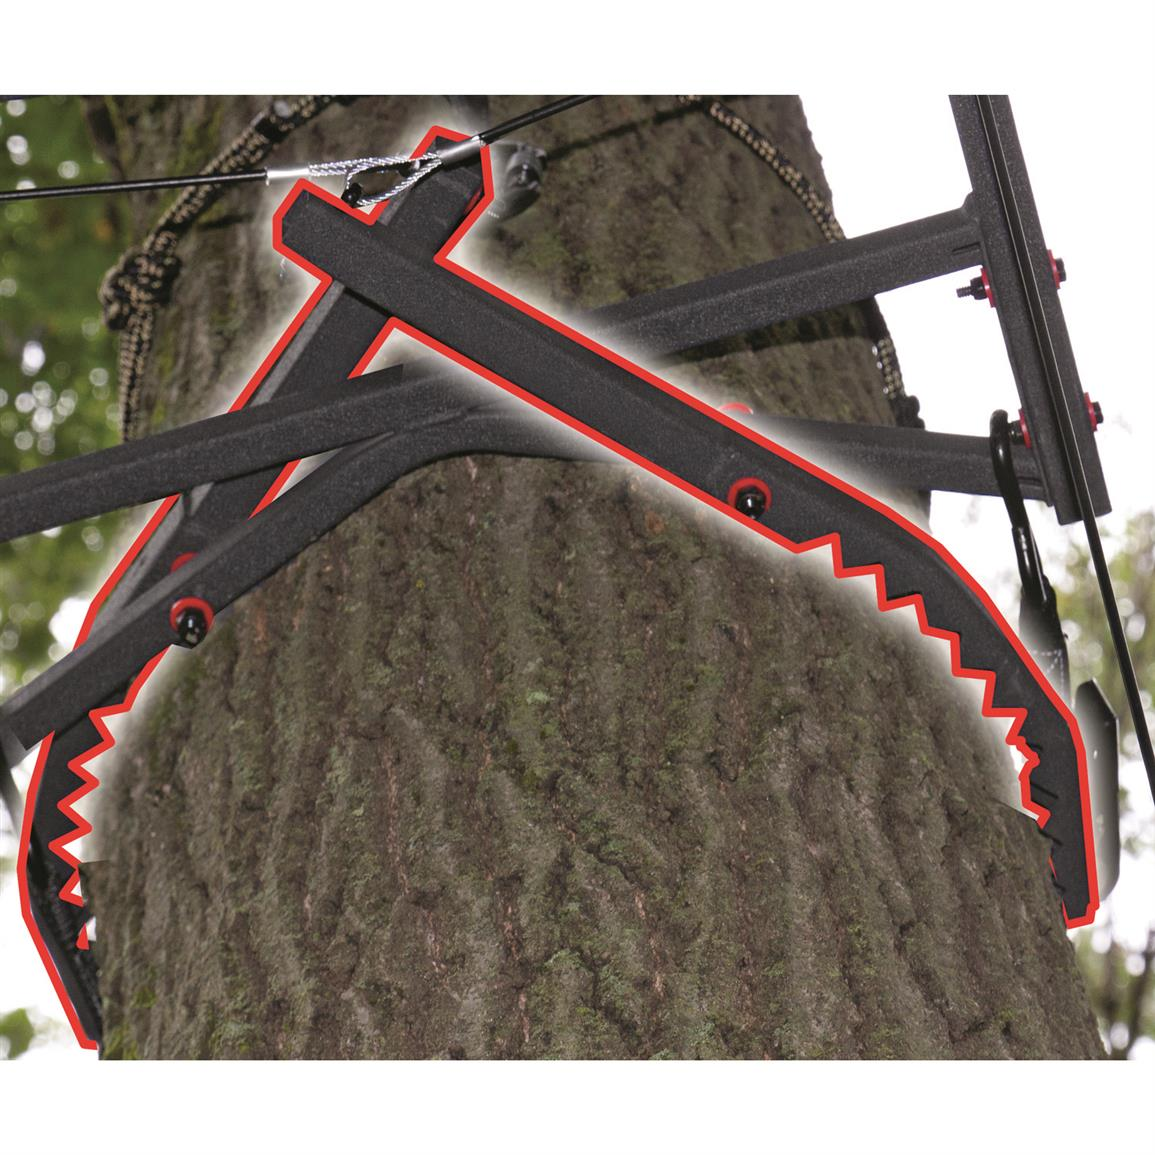 Jaw Safety System provides solid, secure attachment to tree before you climb up